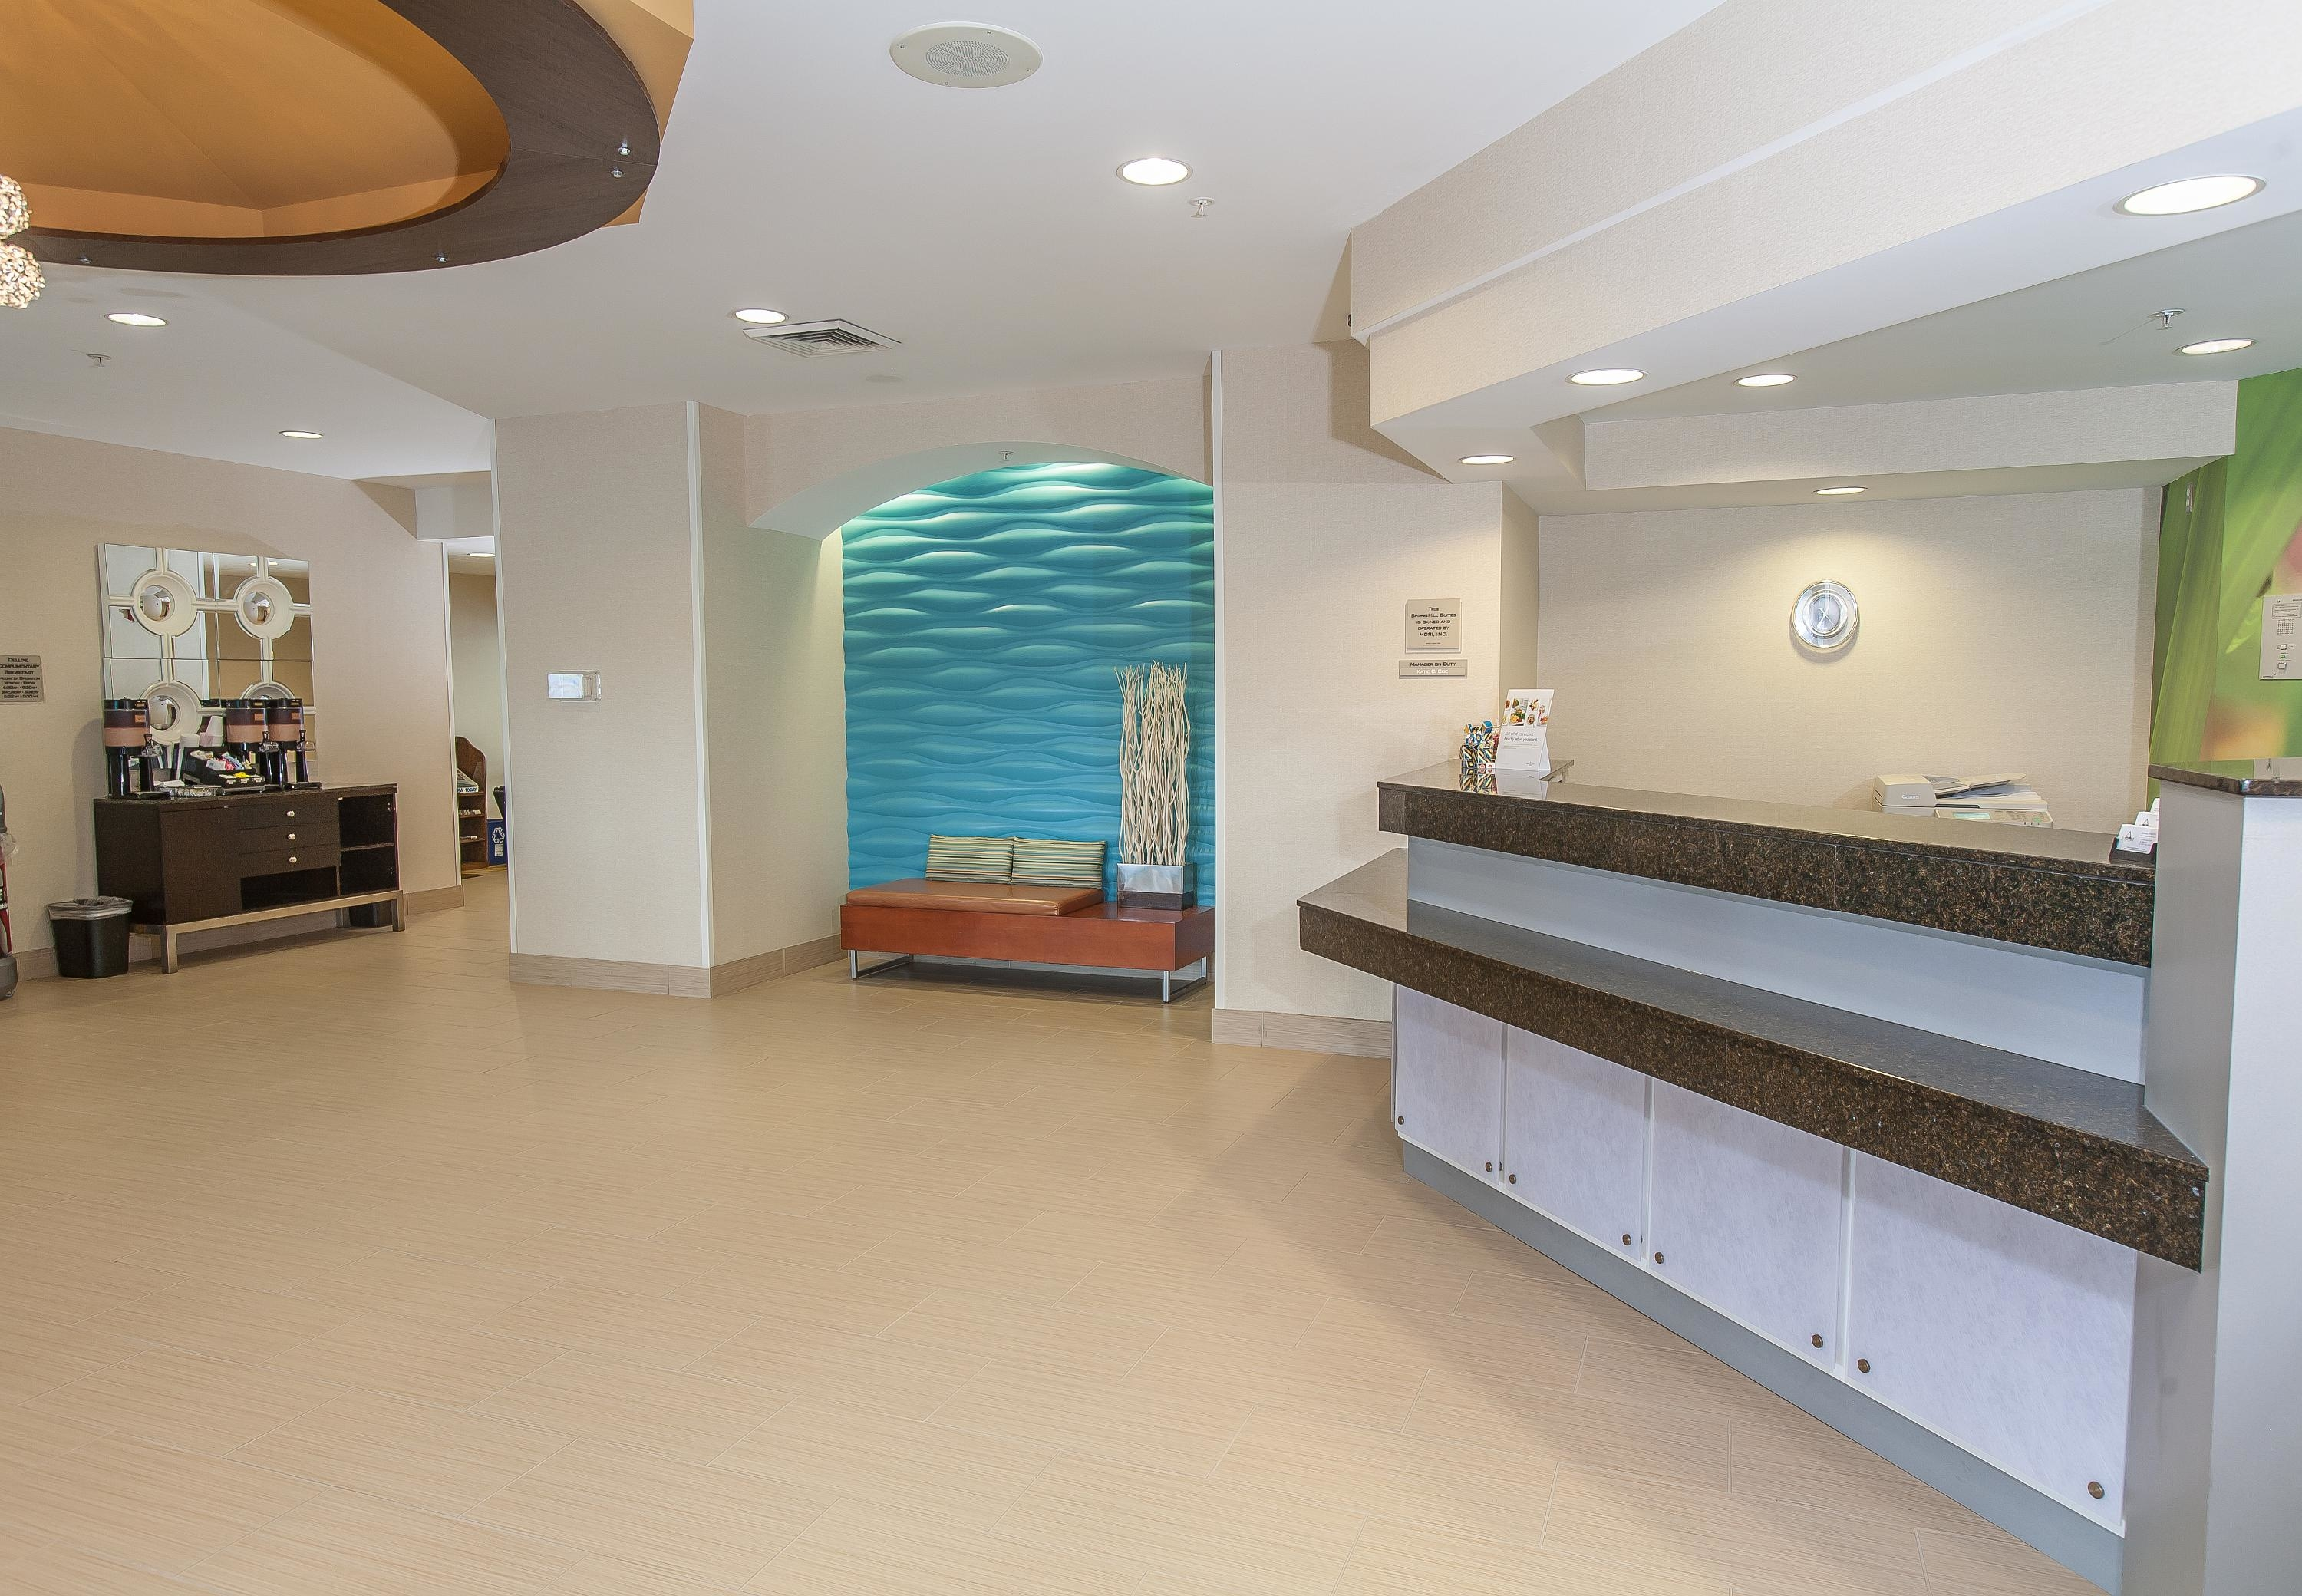 SpringHill Suites by Marriott Florence image 9